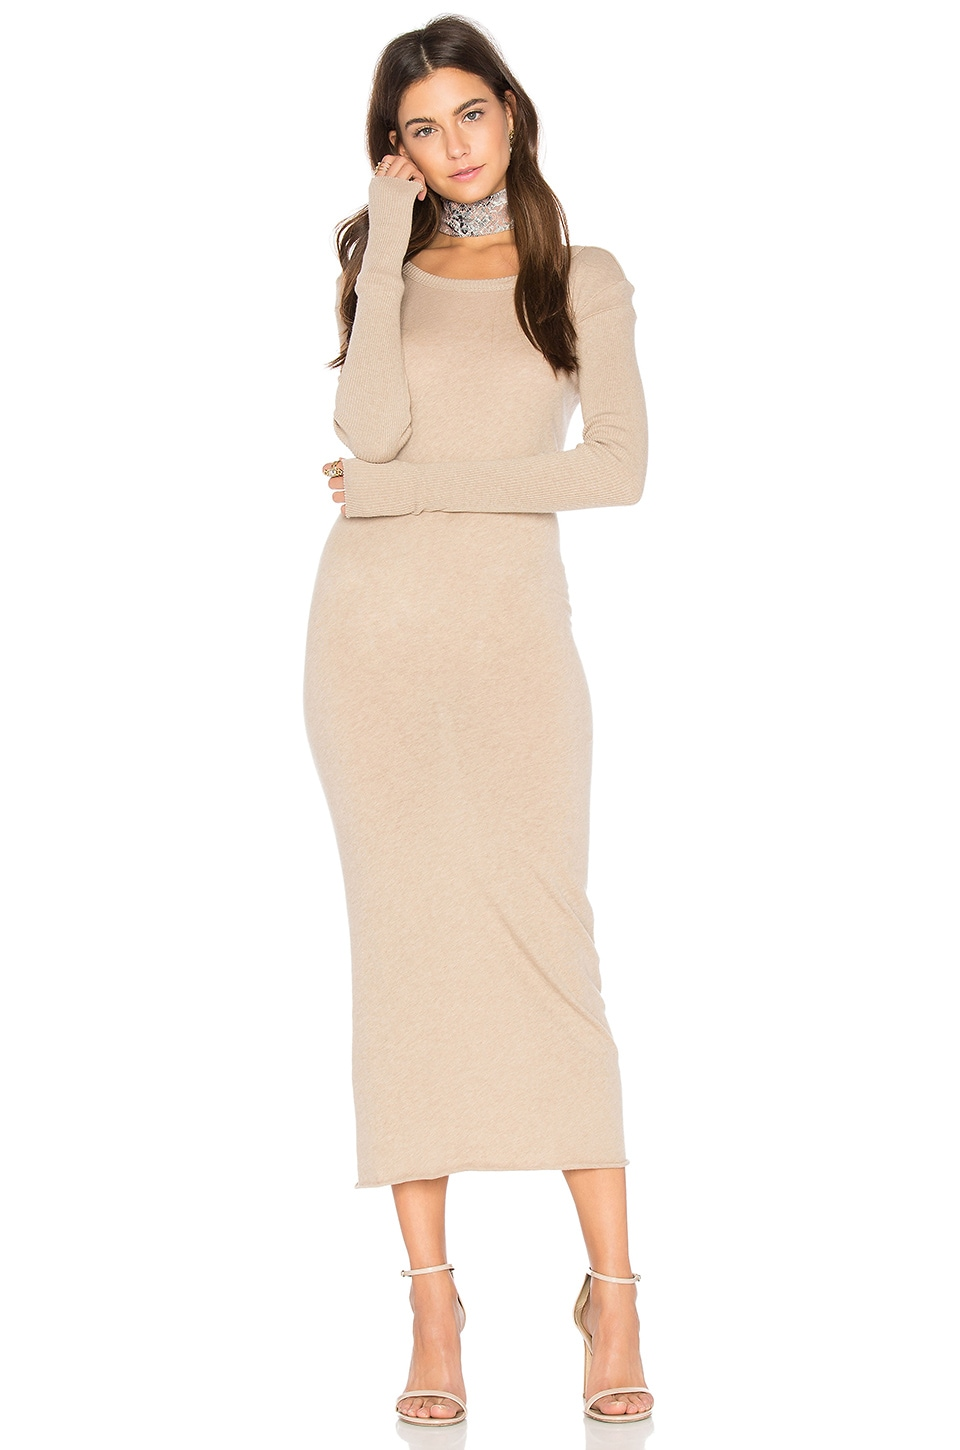 Enza Costa x REVOLVE Cashmere Long Sleeve Crew Dress in Khaki